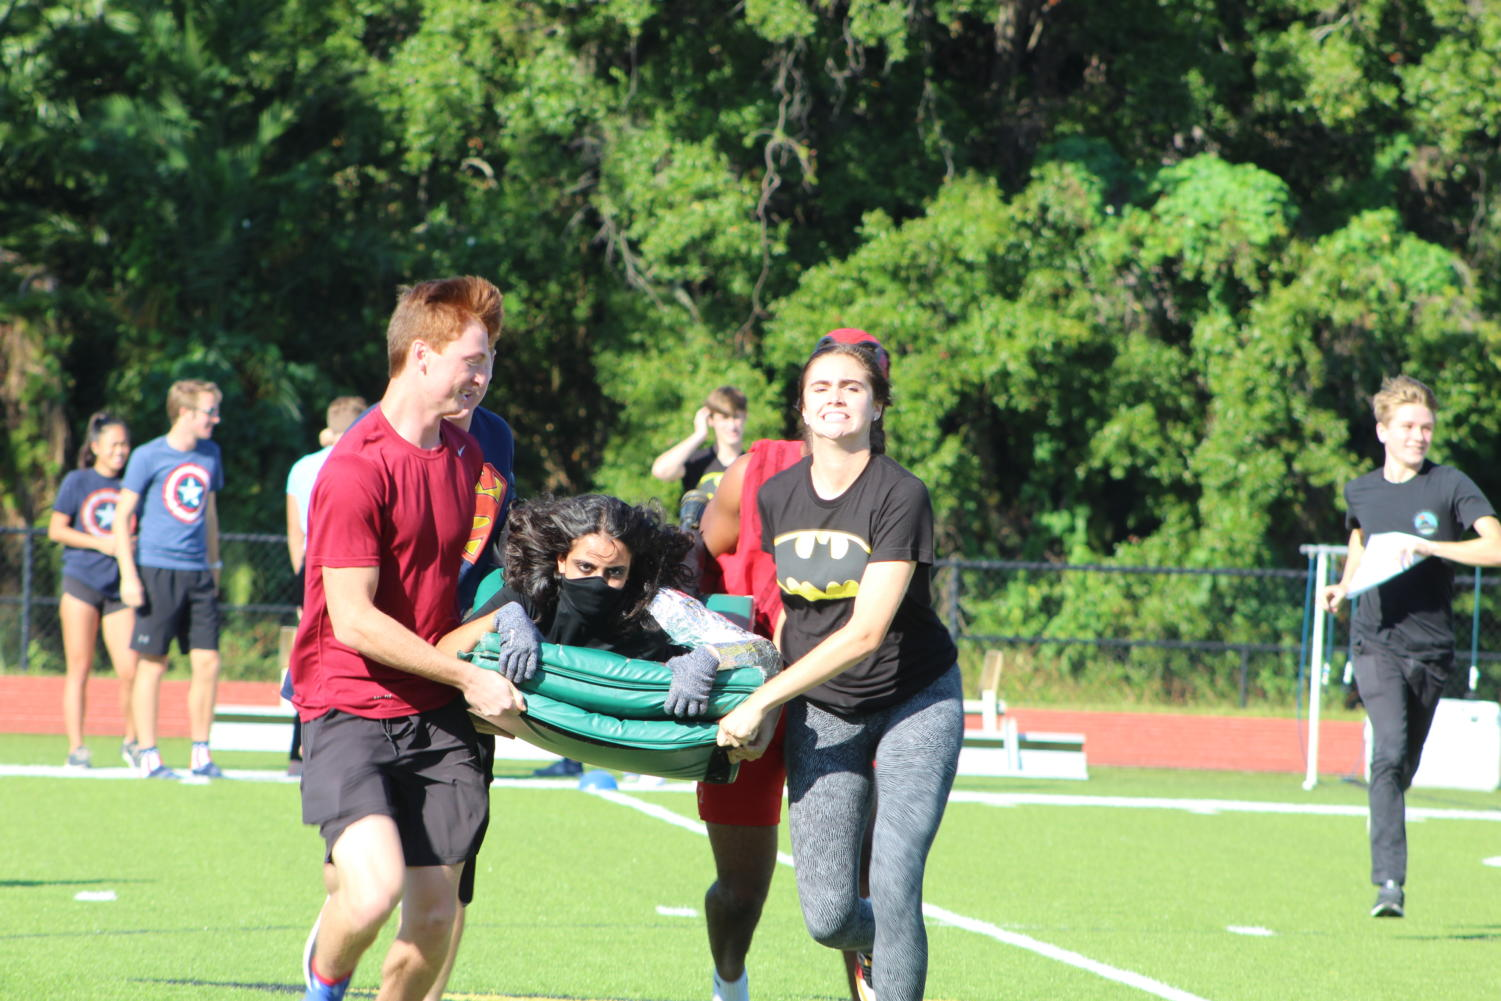 Senior+Gabby+Crenetti+struggles+to+balance+while+being+carried+across+the+feild.